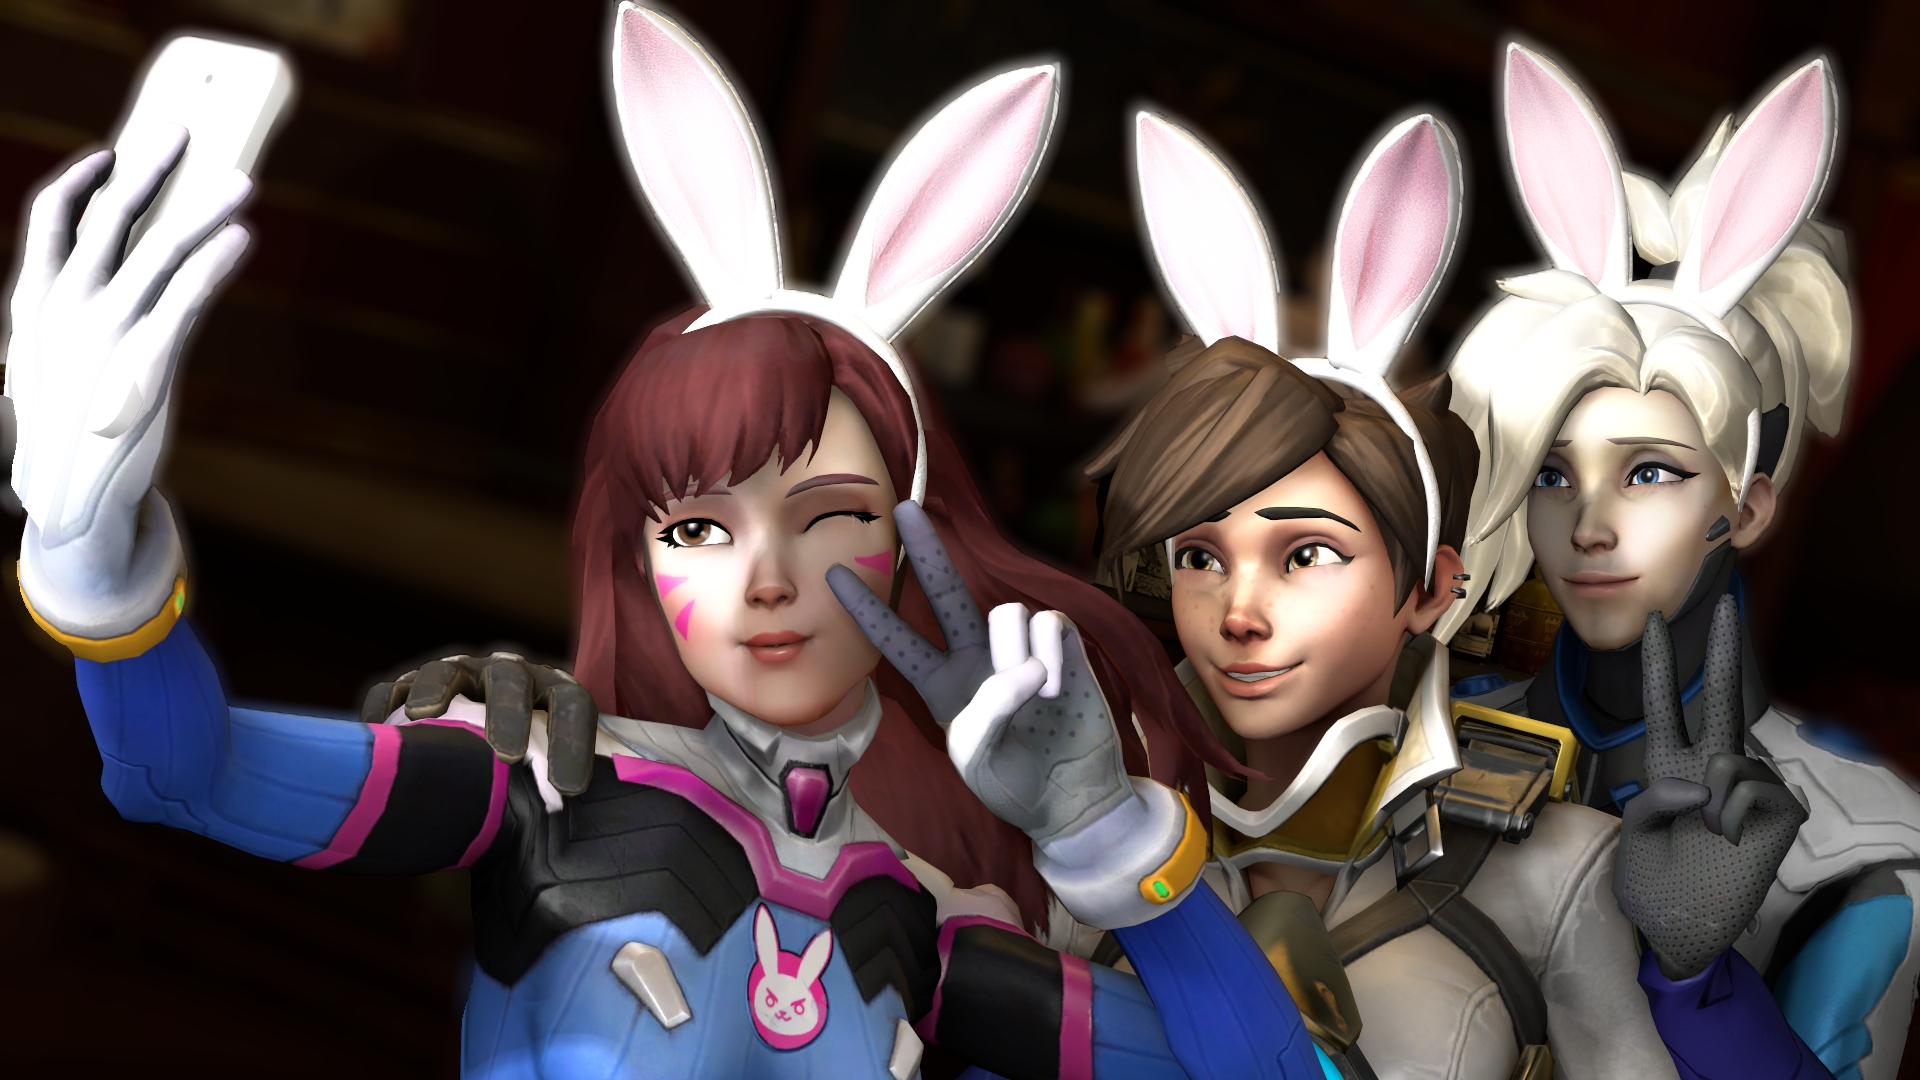 Overwatch Girls Wallpaper 1920x1080 Desktop Wallpaper Mercy D Va Tracer Selfie Overwatch